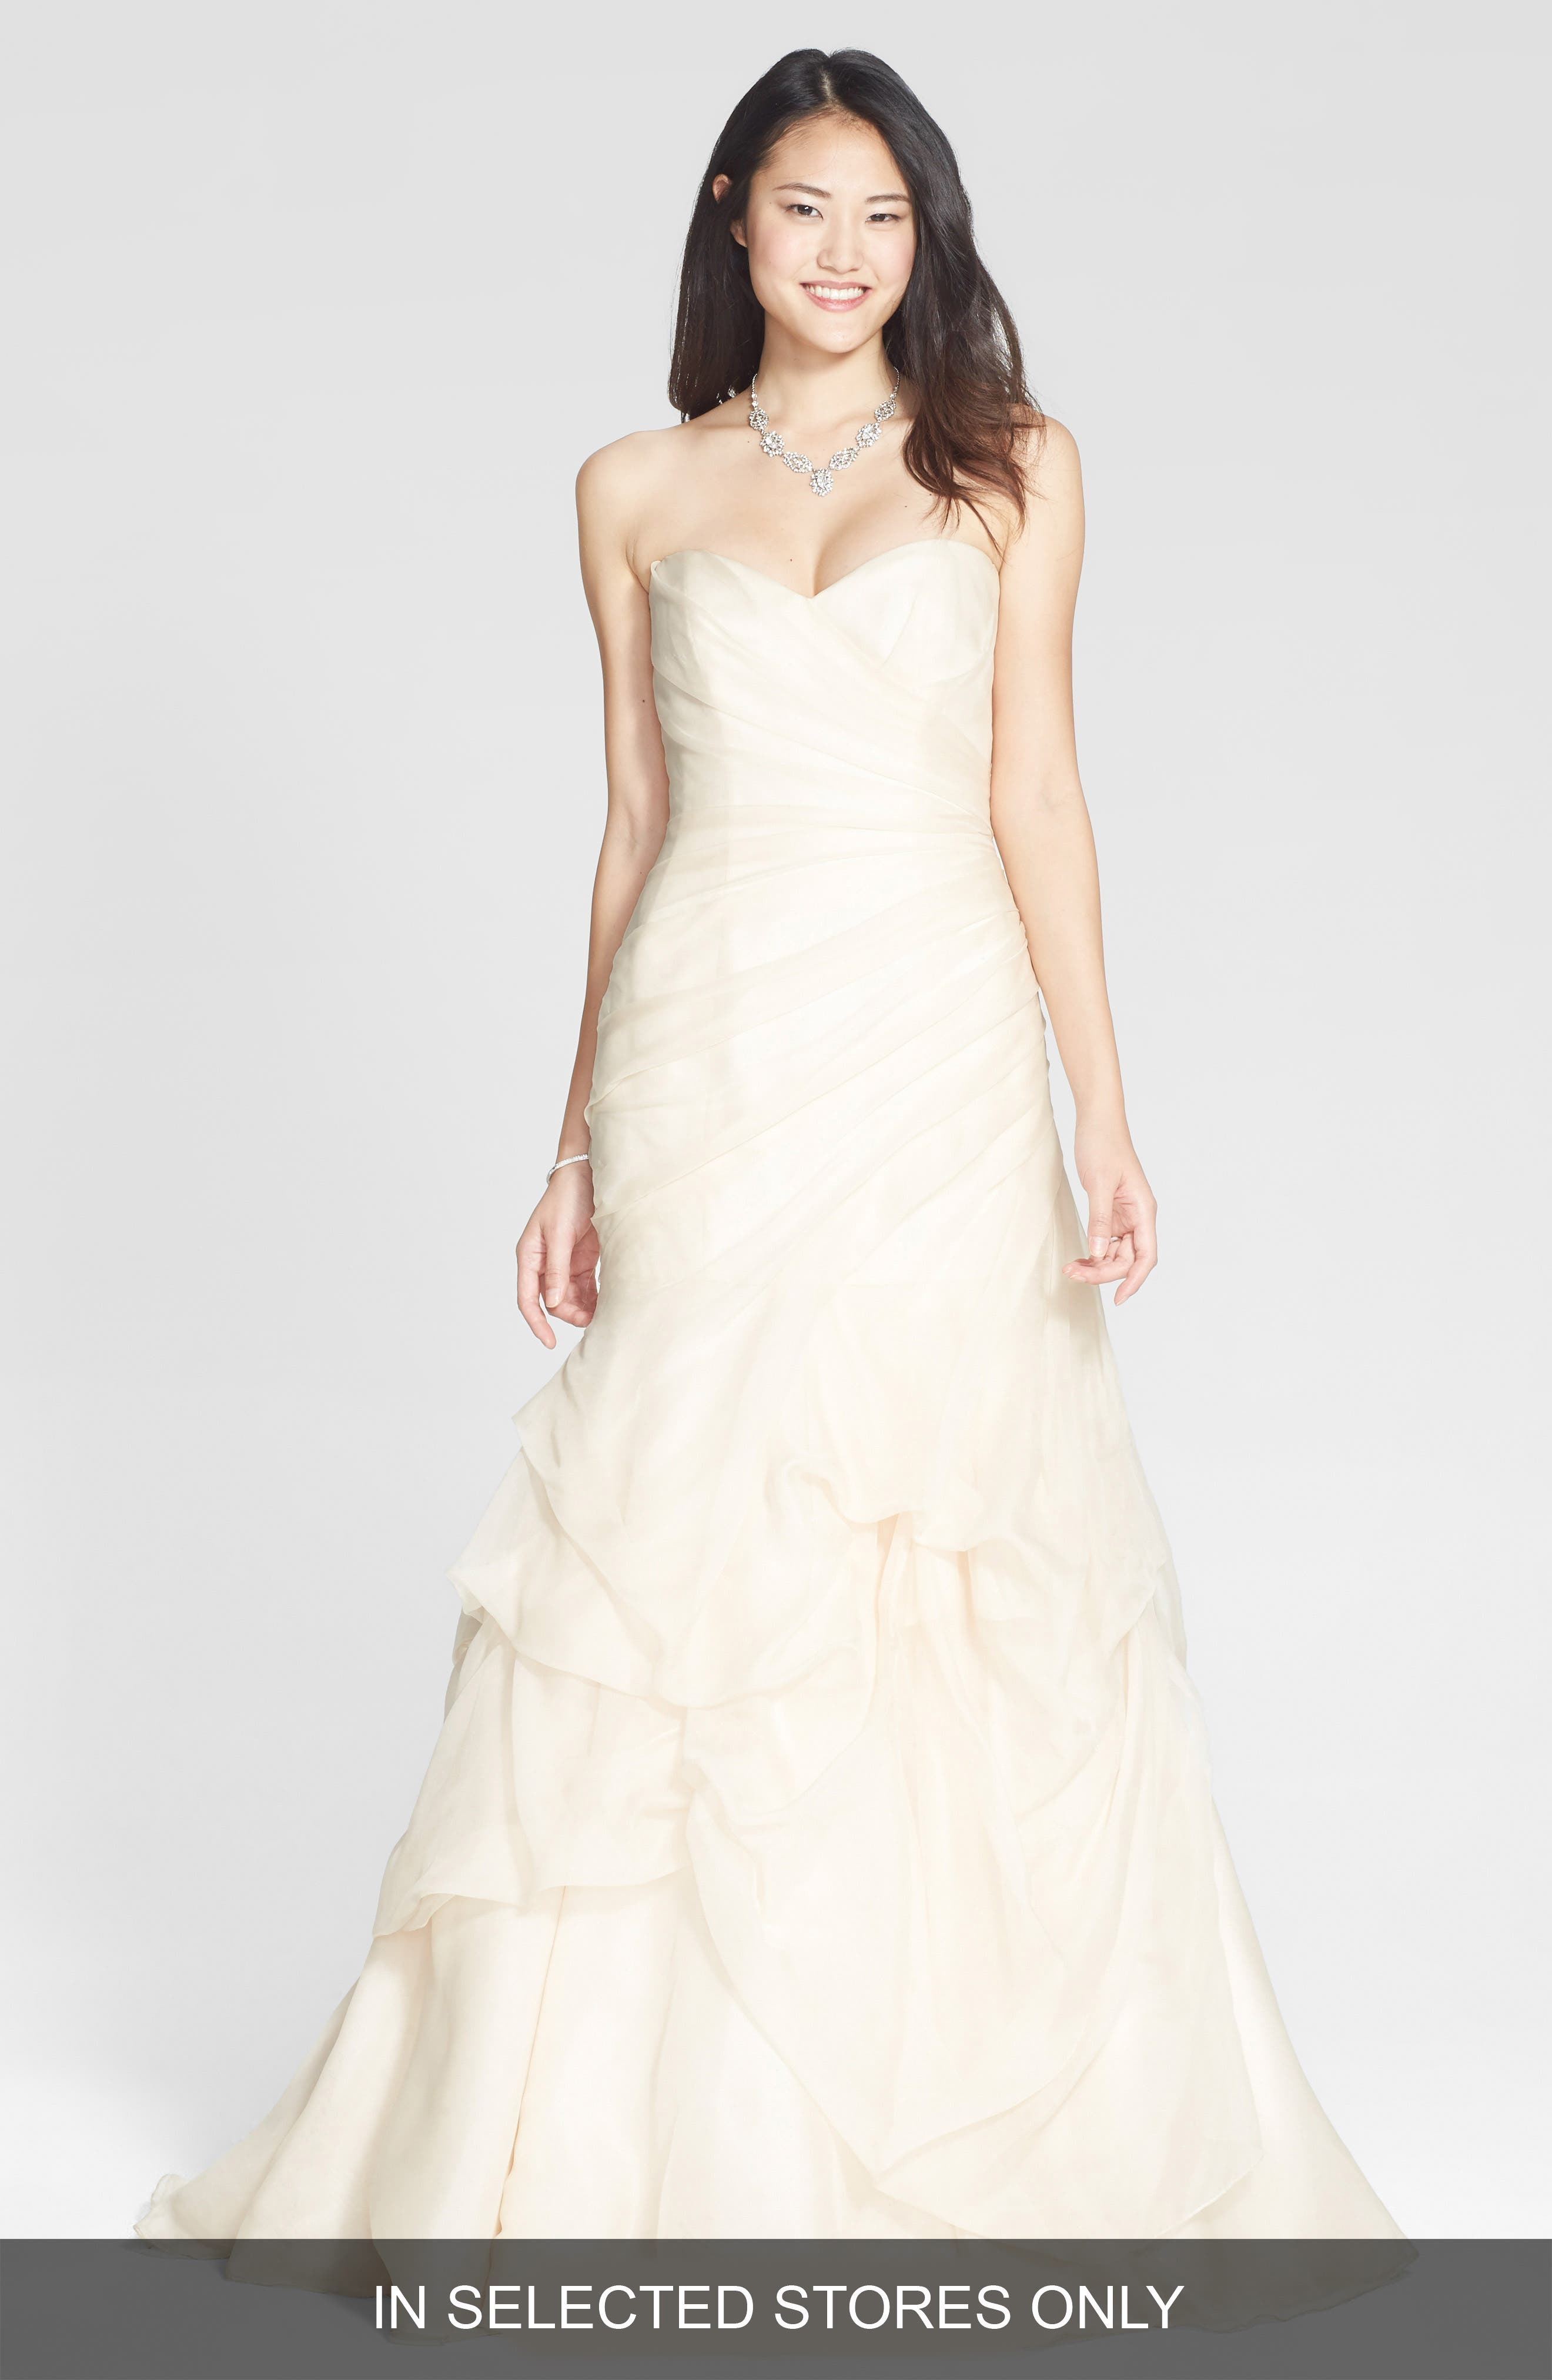 BLISS Monique Lhuillier Draped Silk Organza Trumpet Dress (In Stores Only)